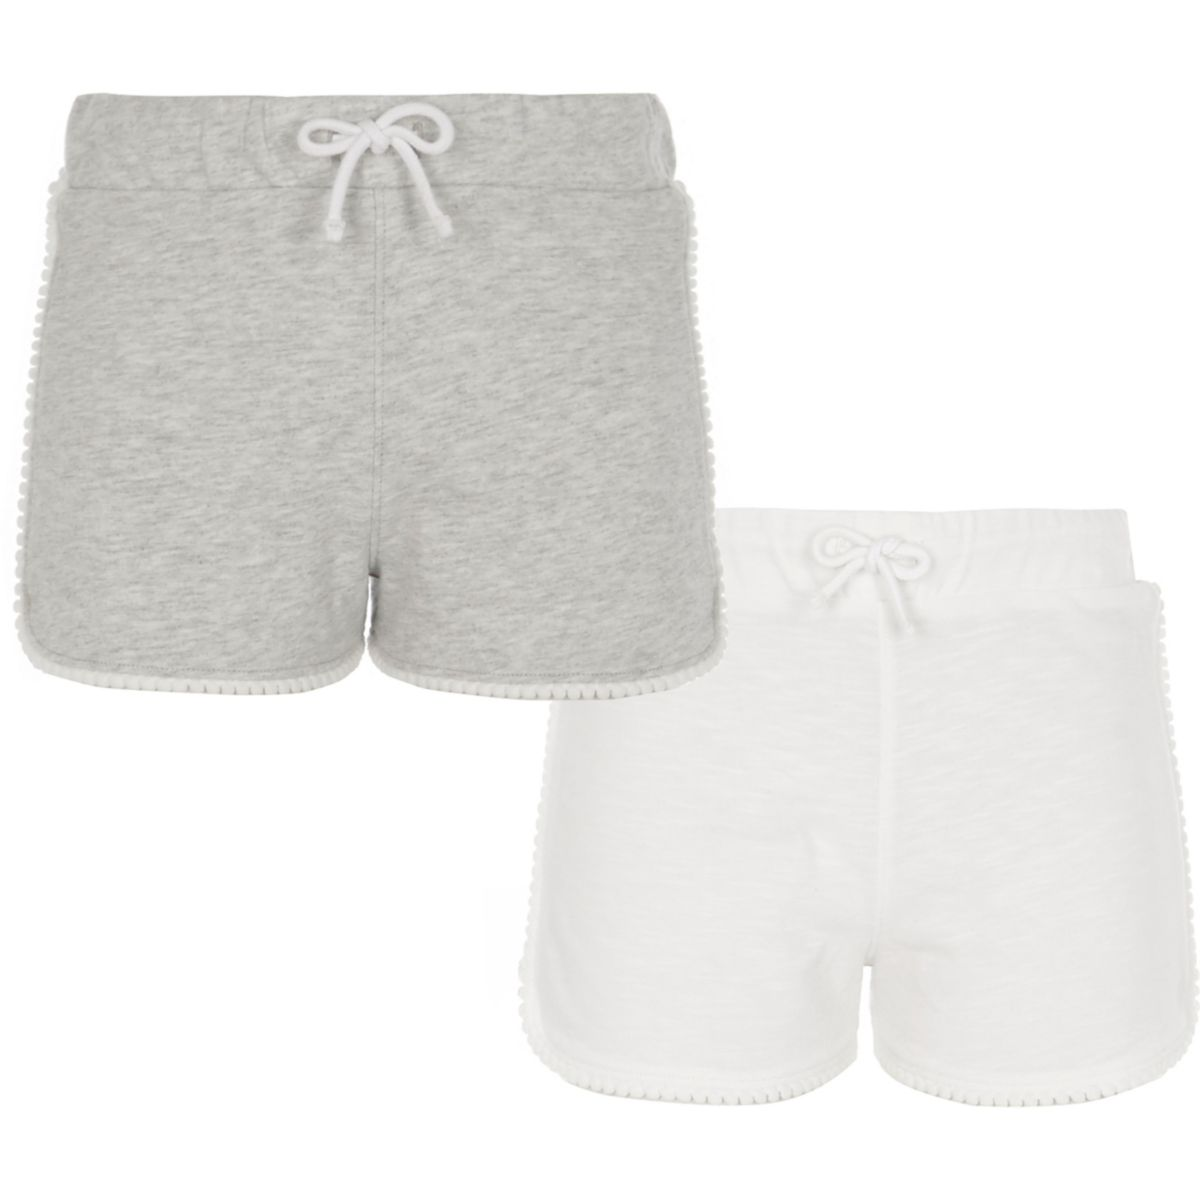 Girls Grey And White Runner Shorts Multipack by River Island